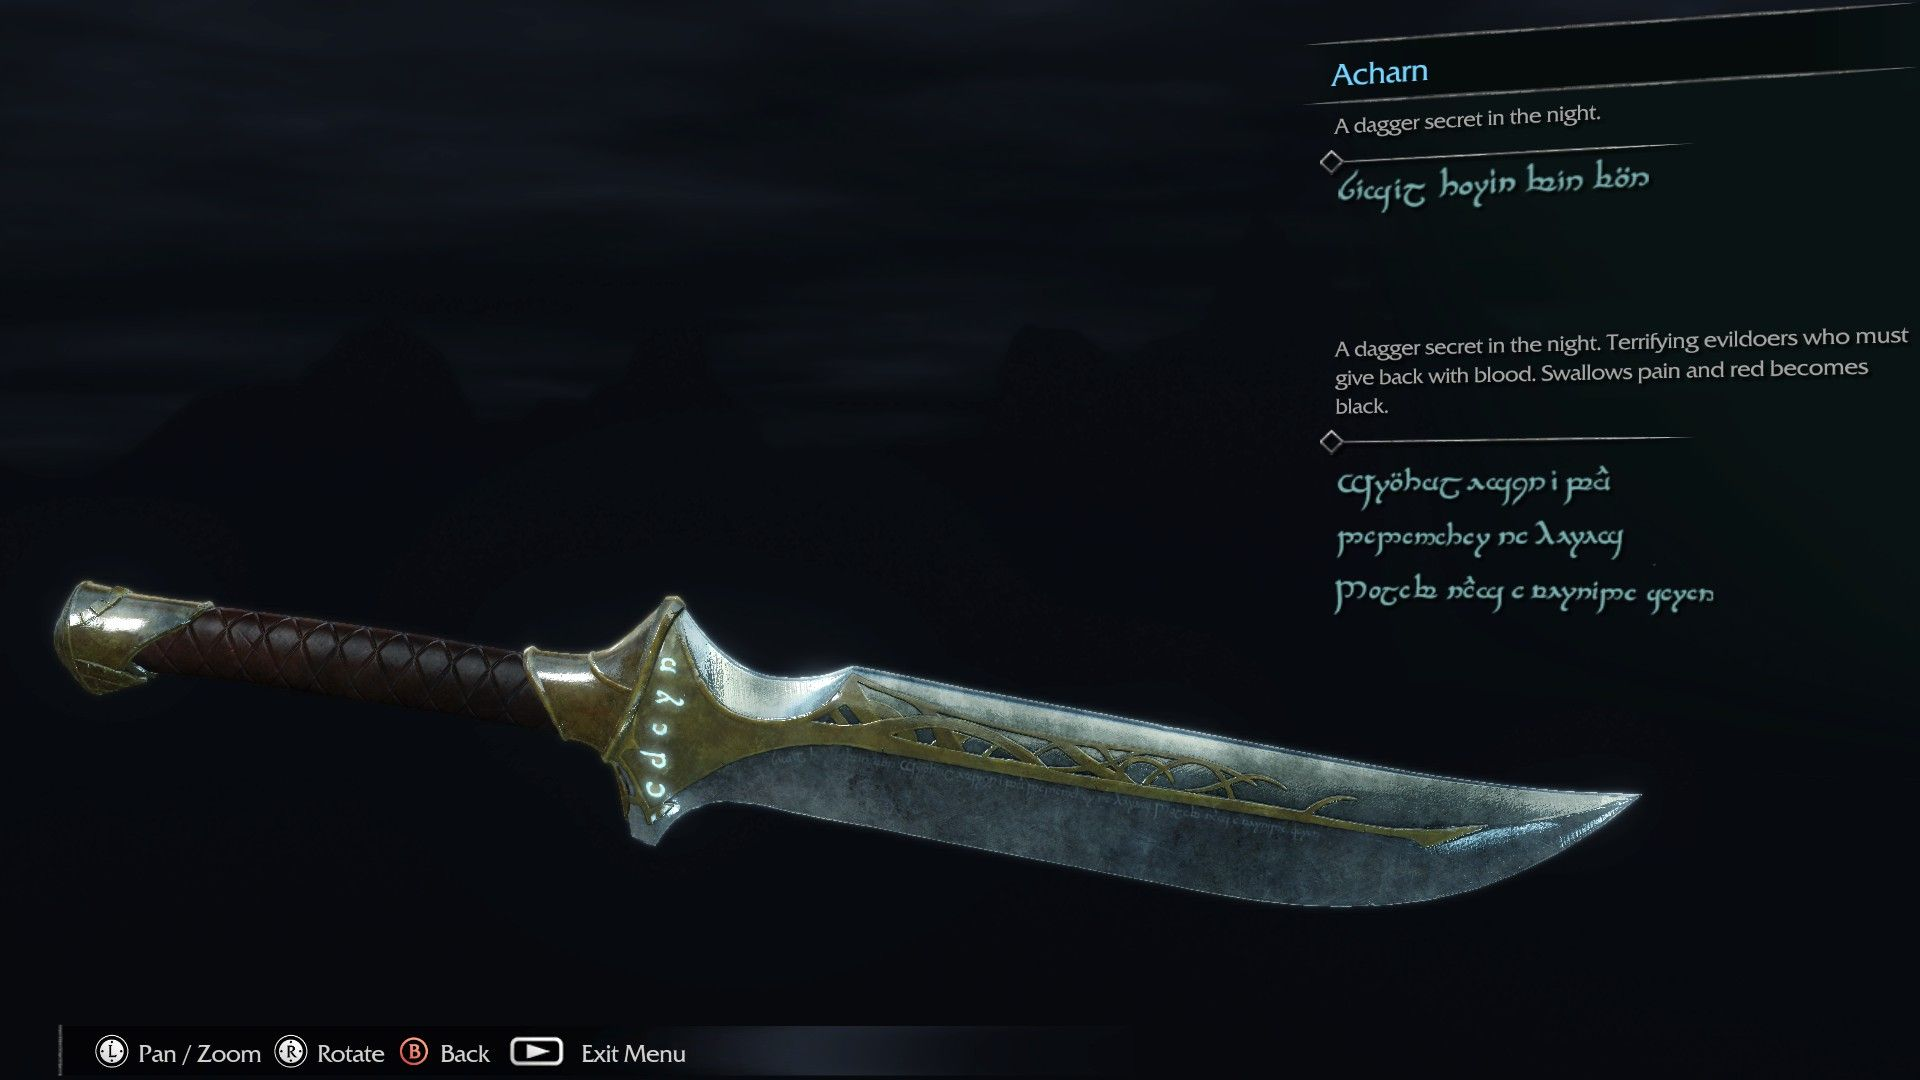 Pin On Fantasy Weapons And Gear